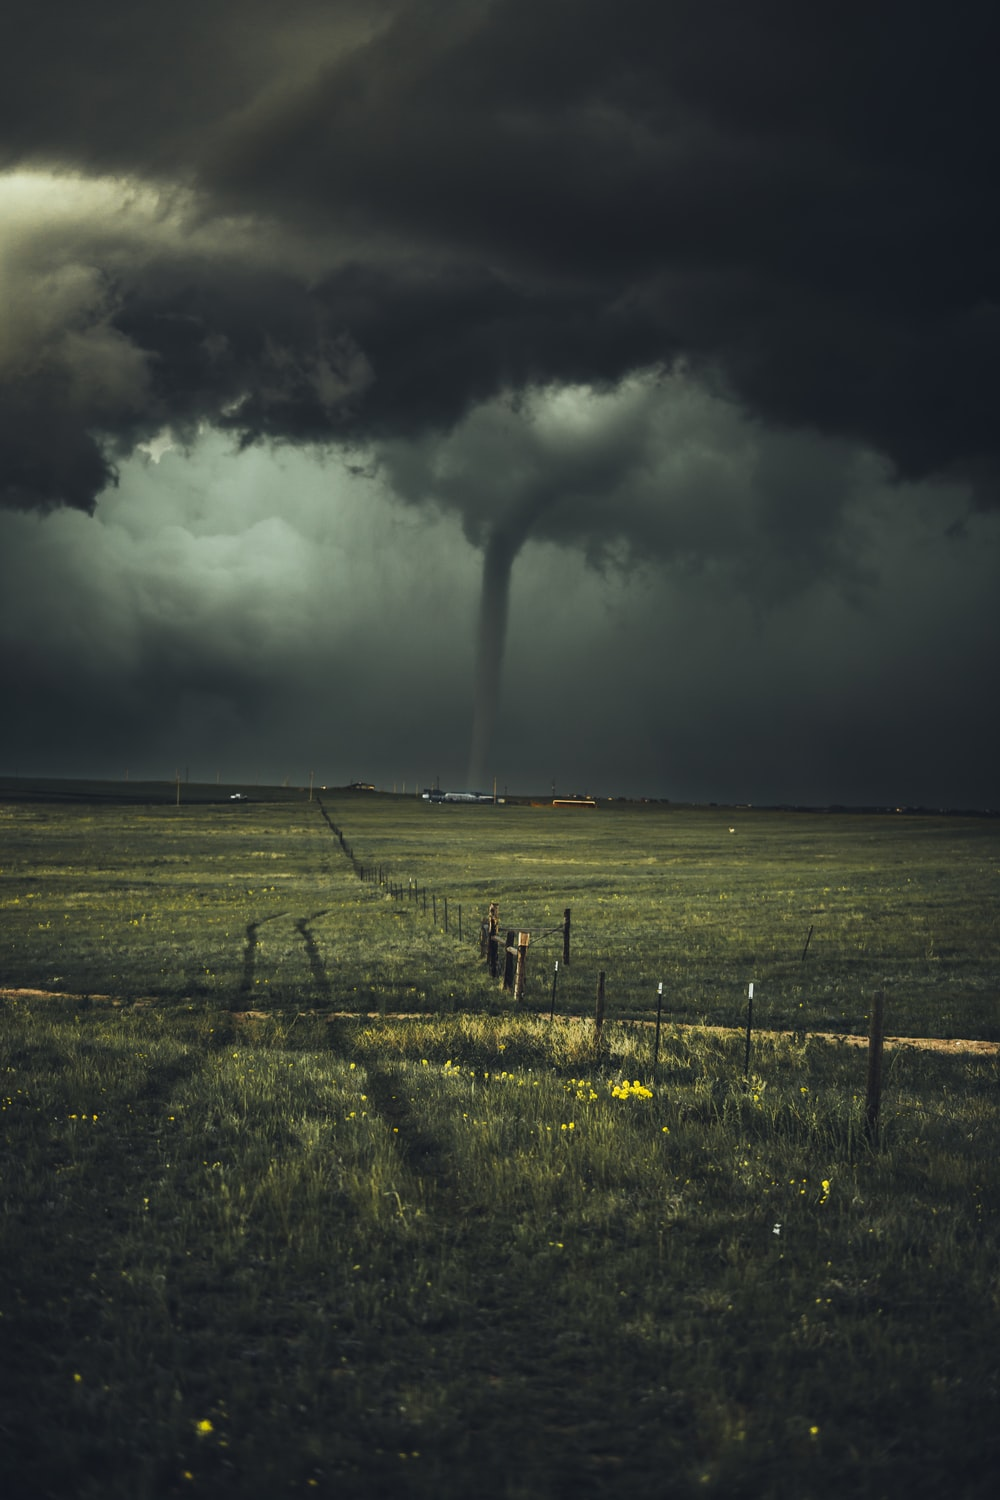 450 tornado pictures hd download free images on unsplash - Tornado images hd ...